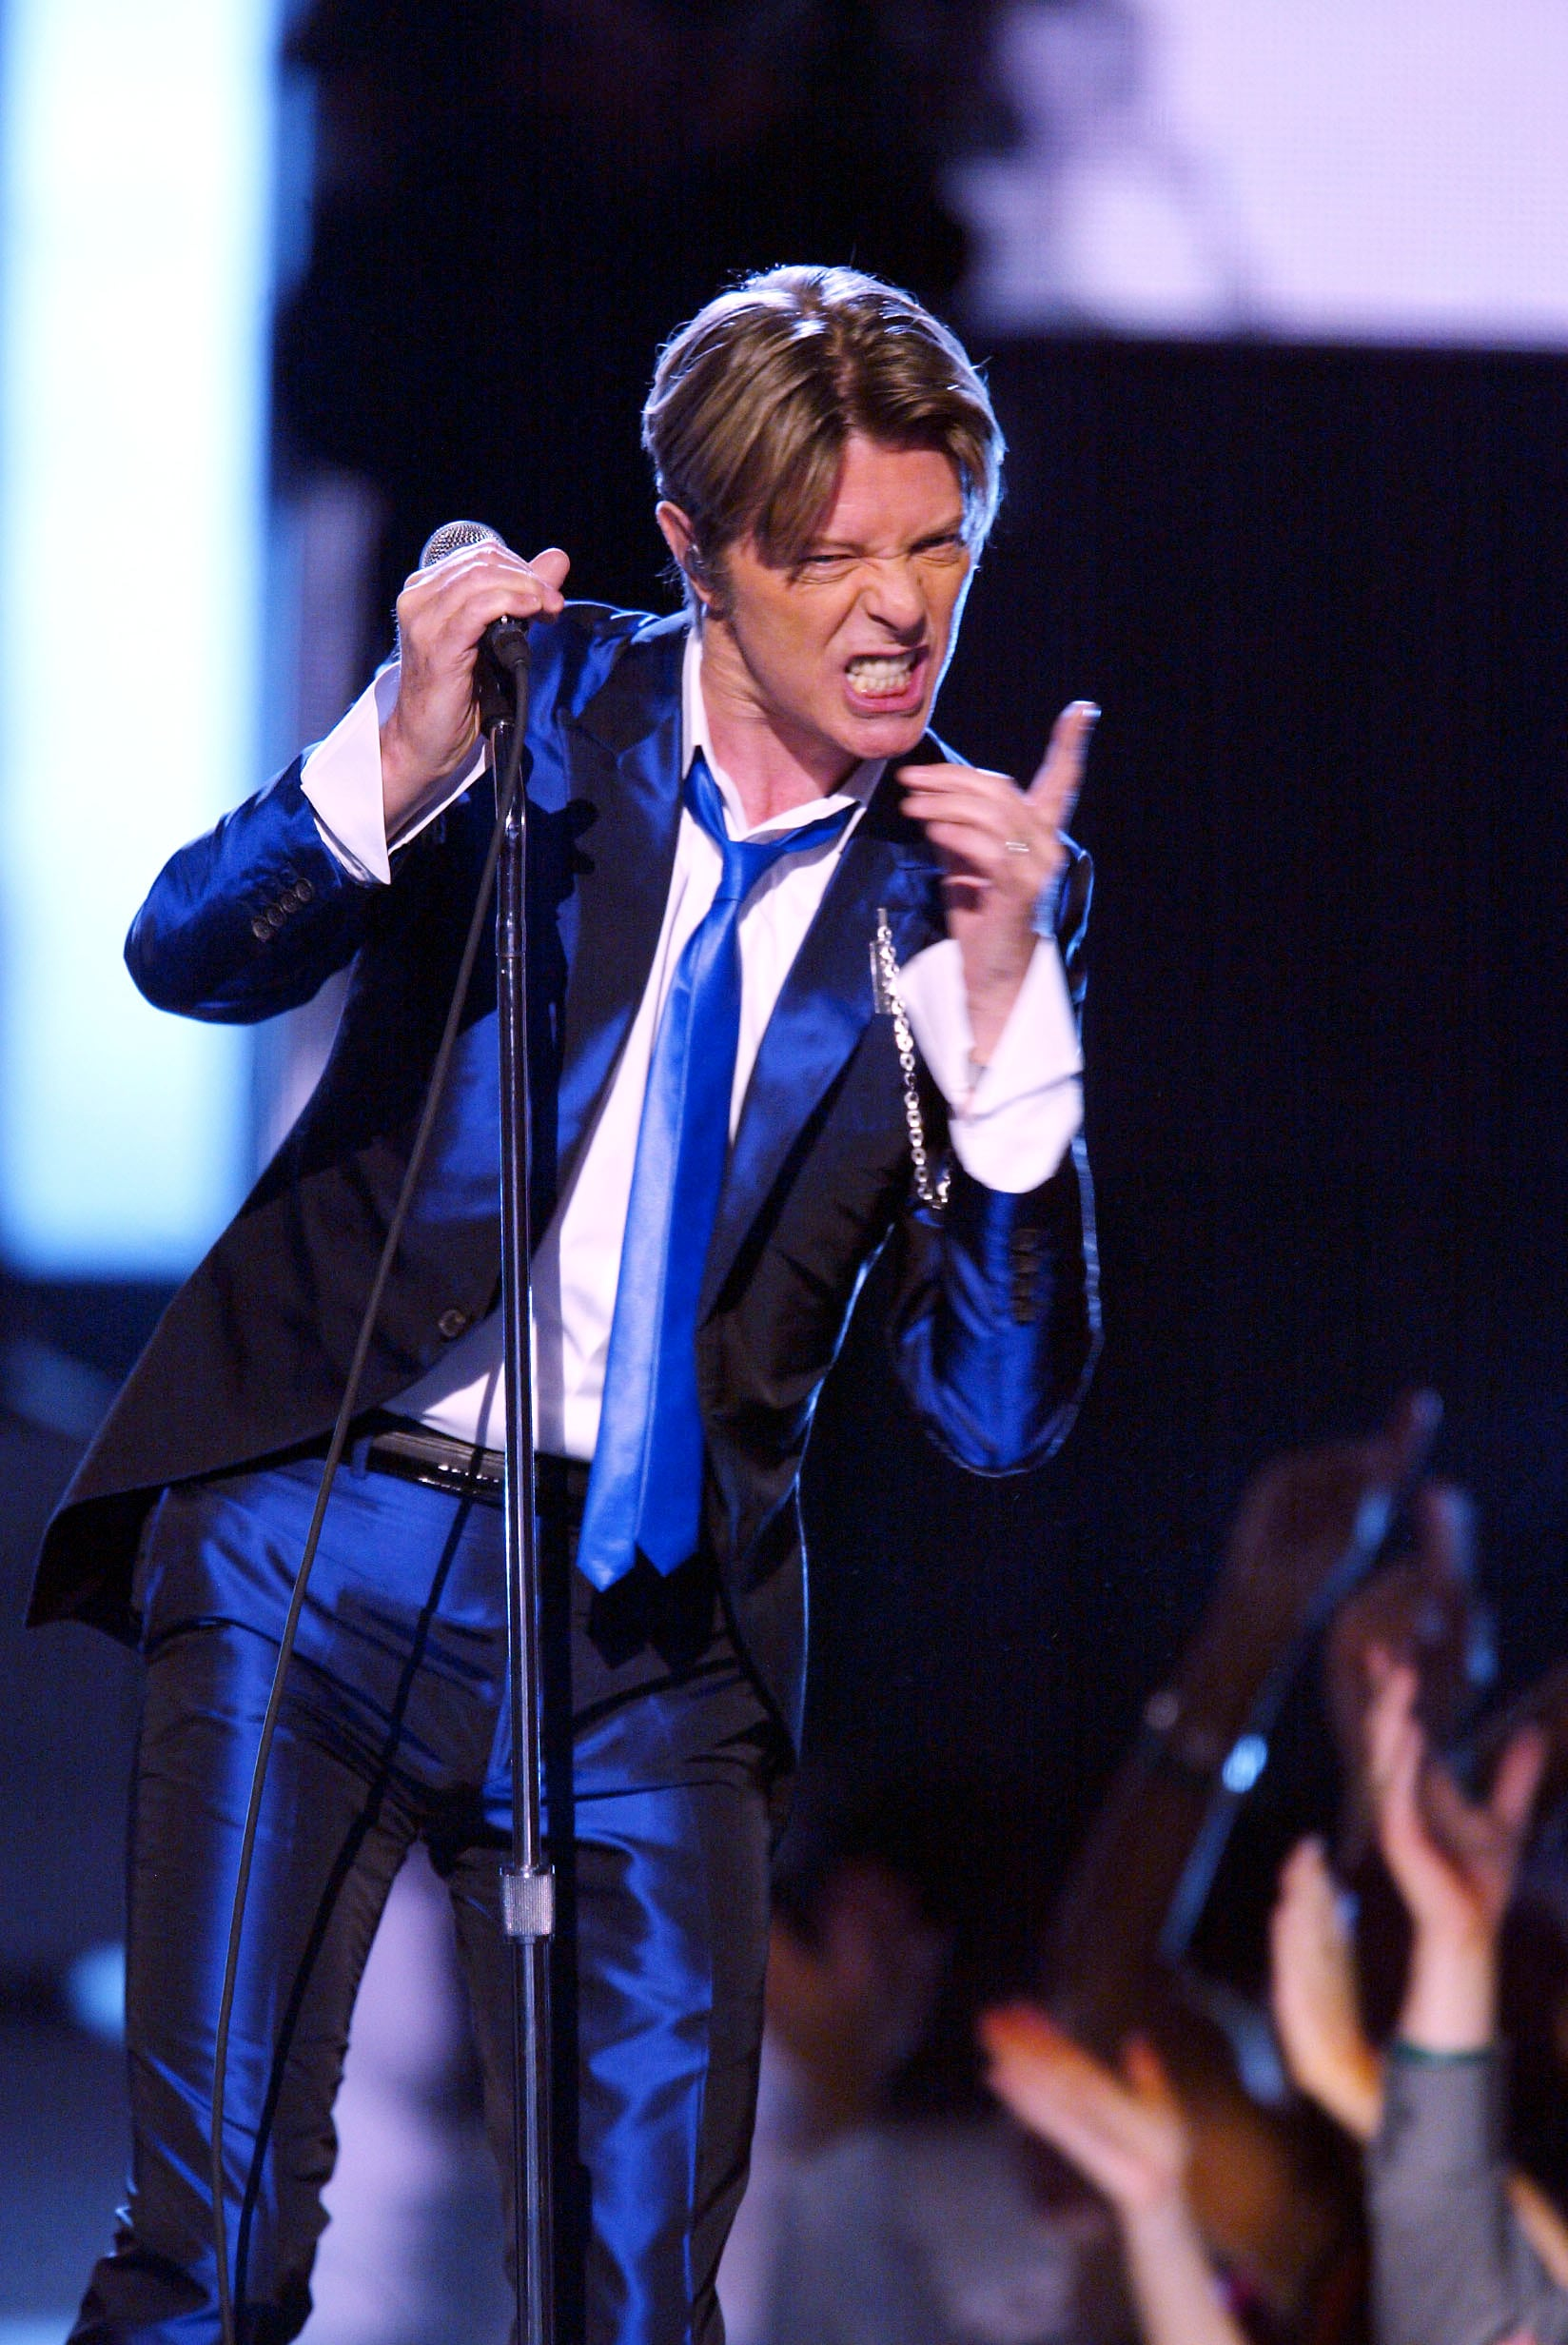 1545067011232_GettyImages-2430180.jpg - David Bowie al VH1 Vogue Fashion Awards sul palco del Radio City Music Hall di New York nell'ottobre del 2012